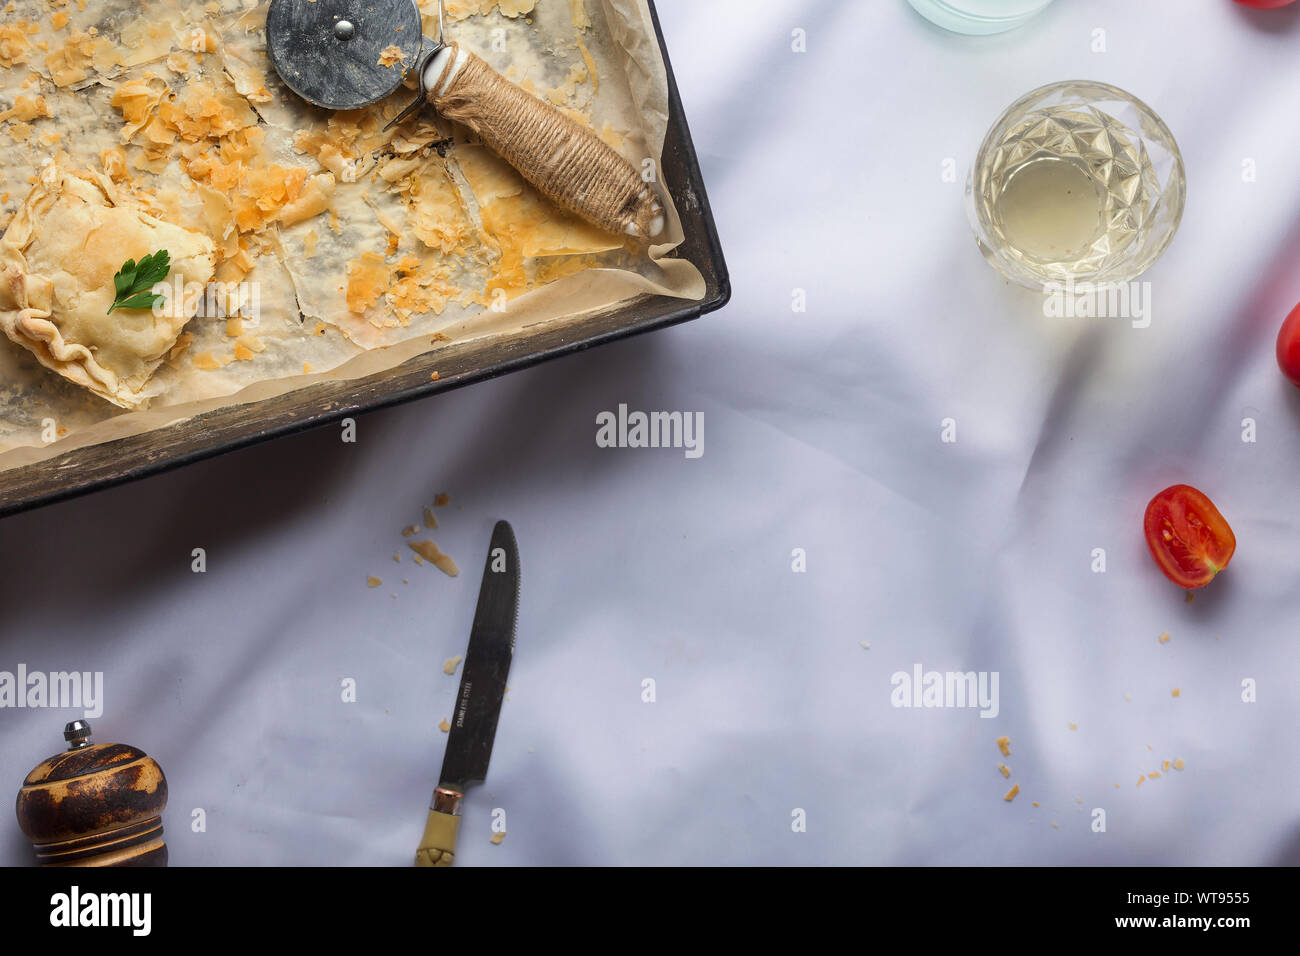 hot water crust, crust recipe, french canadian, pastry, shepherd's pie recipe, pie maker, kidney pie, tourtiere Stock Photo